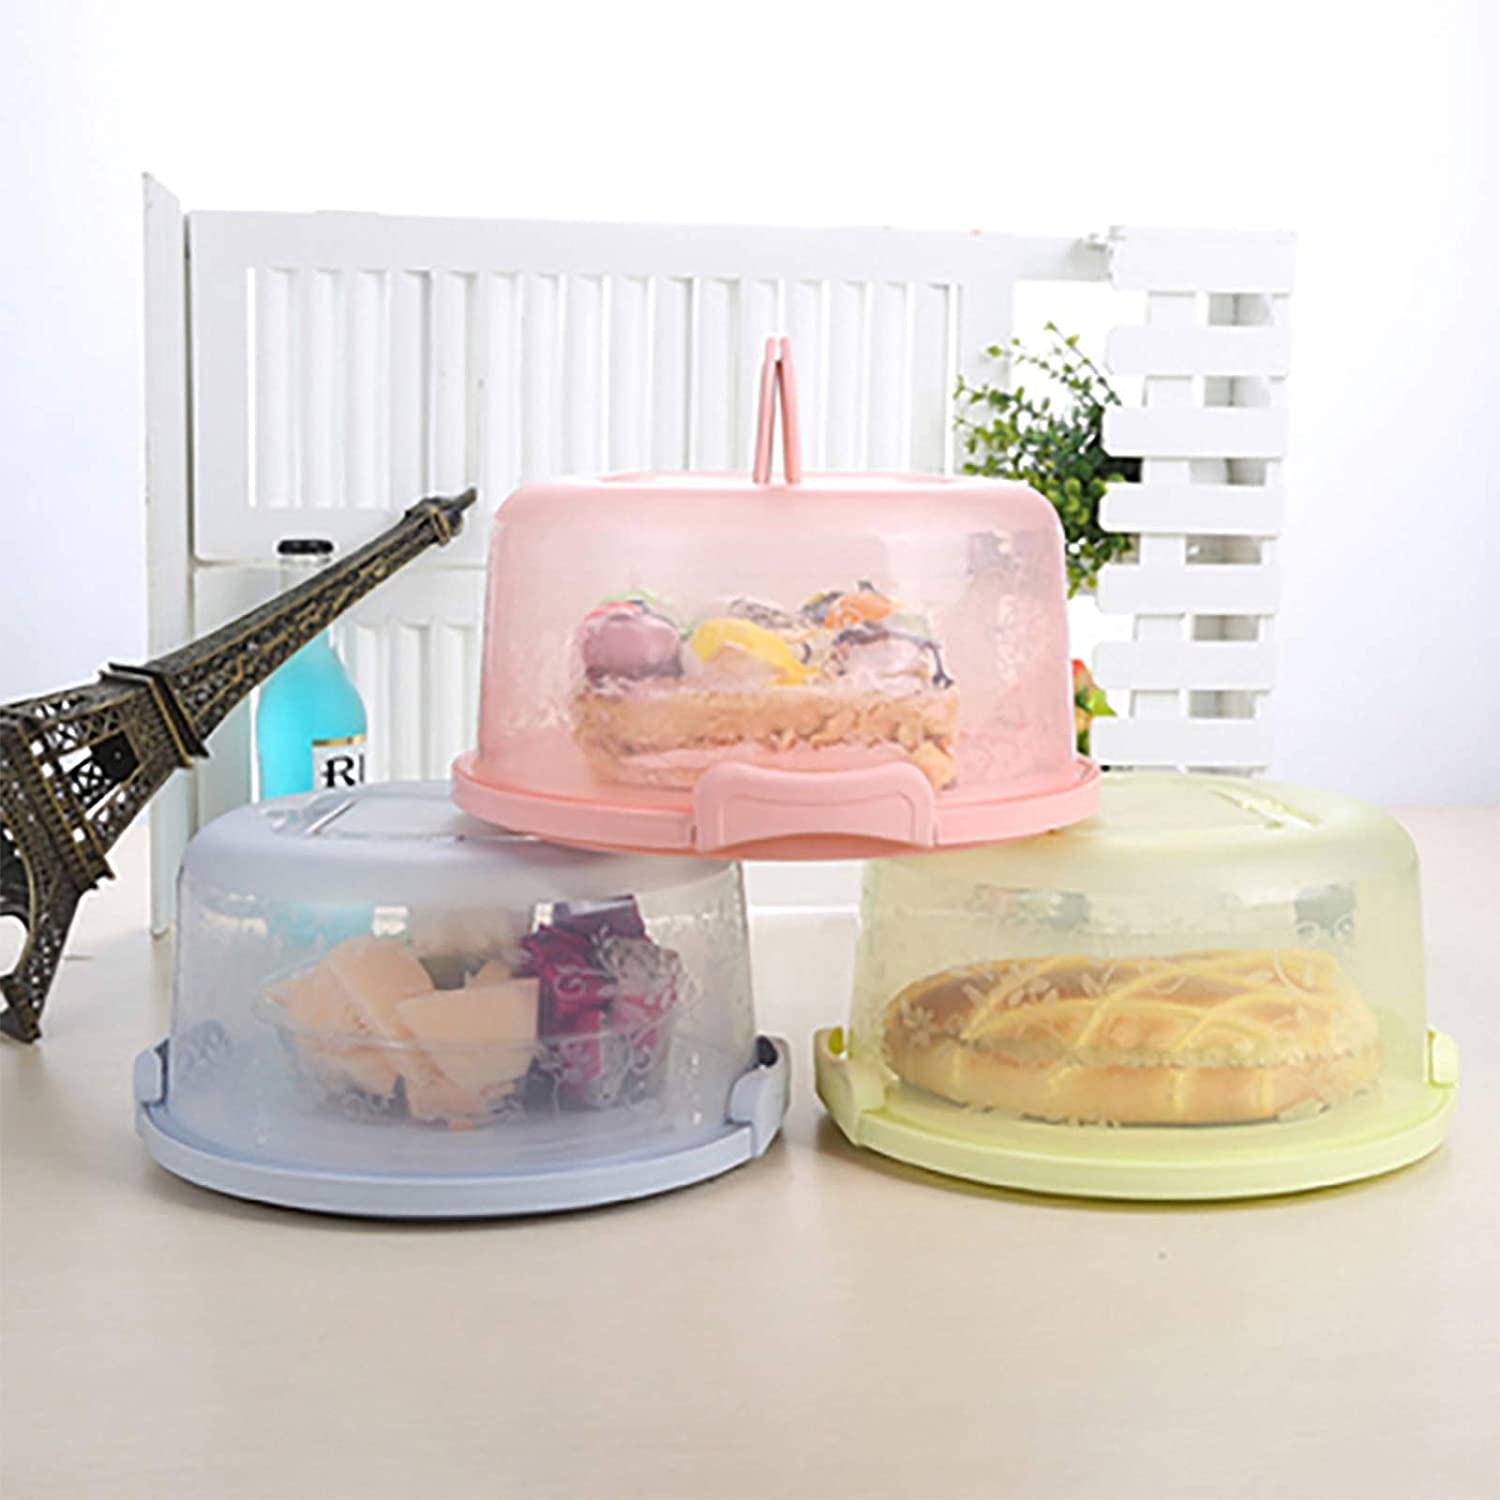 Green Cake Keeper Small Cake Carrier With Server And Handle Suitable for 8 inch Diameter and 4 inch Height Small Cake Cake Box Home Baking Storage Box